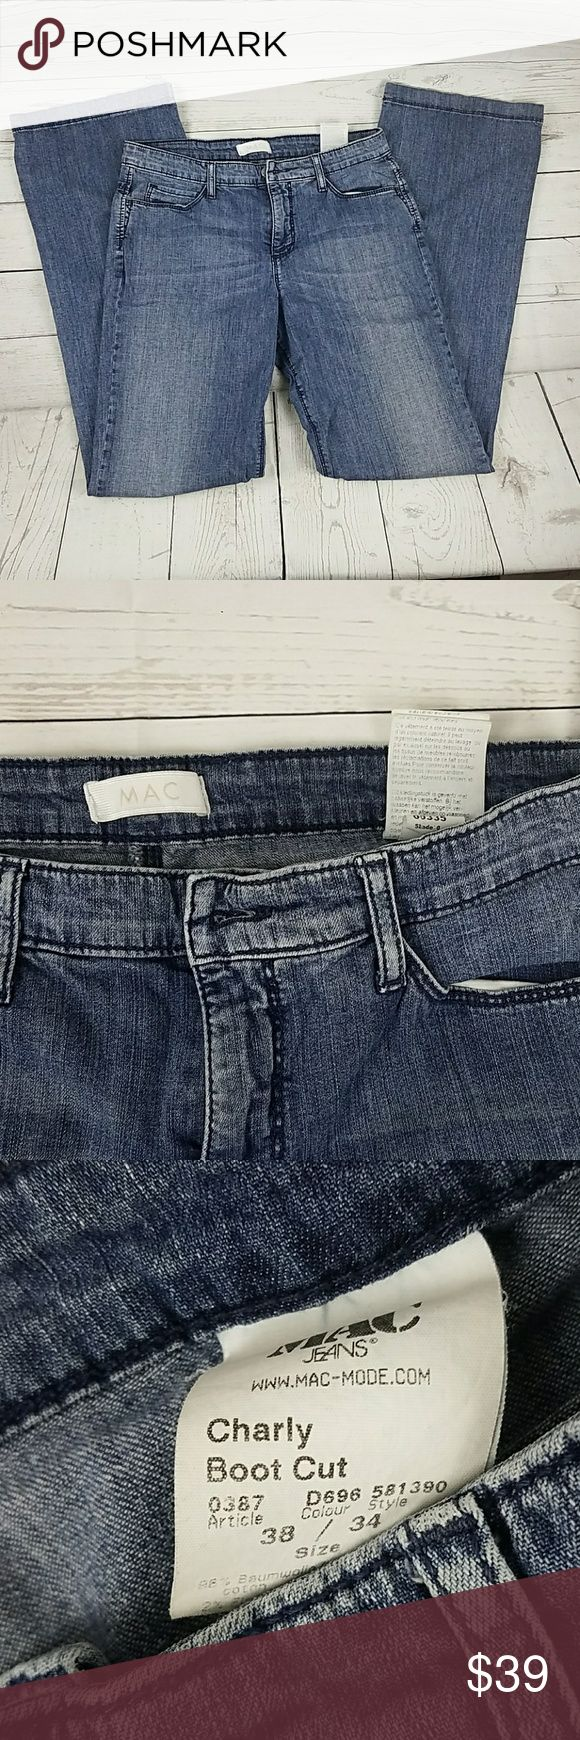 Women's MAC Jean's Straight Leg Size 29 Women's MAC Jean's are in good condition. Gently Worn. Straight Leg Size 29 Inseam 32 Rise 9 Waist 14 1/2 Mac Jeans Straight Leg